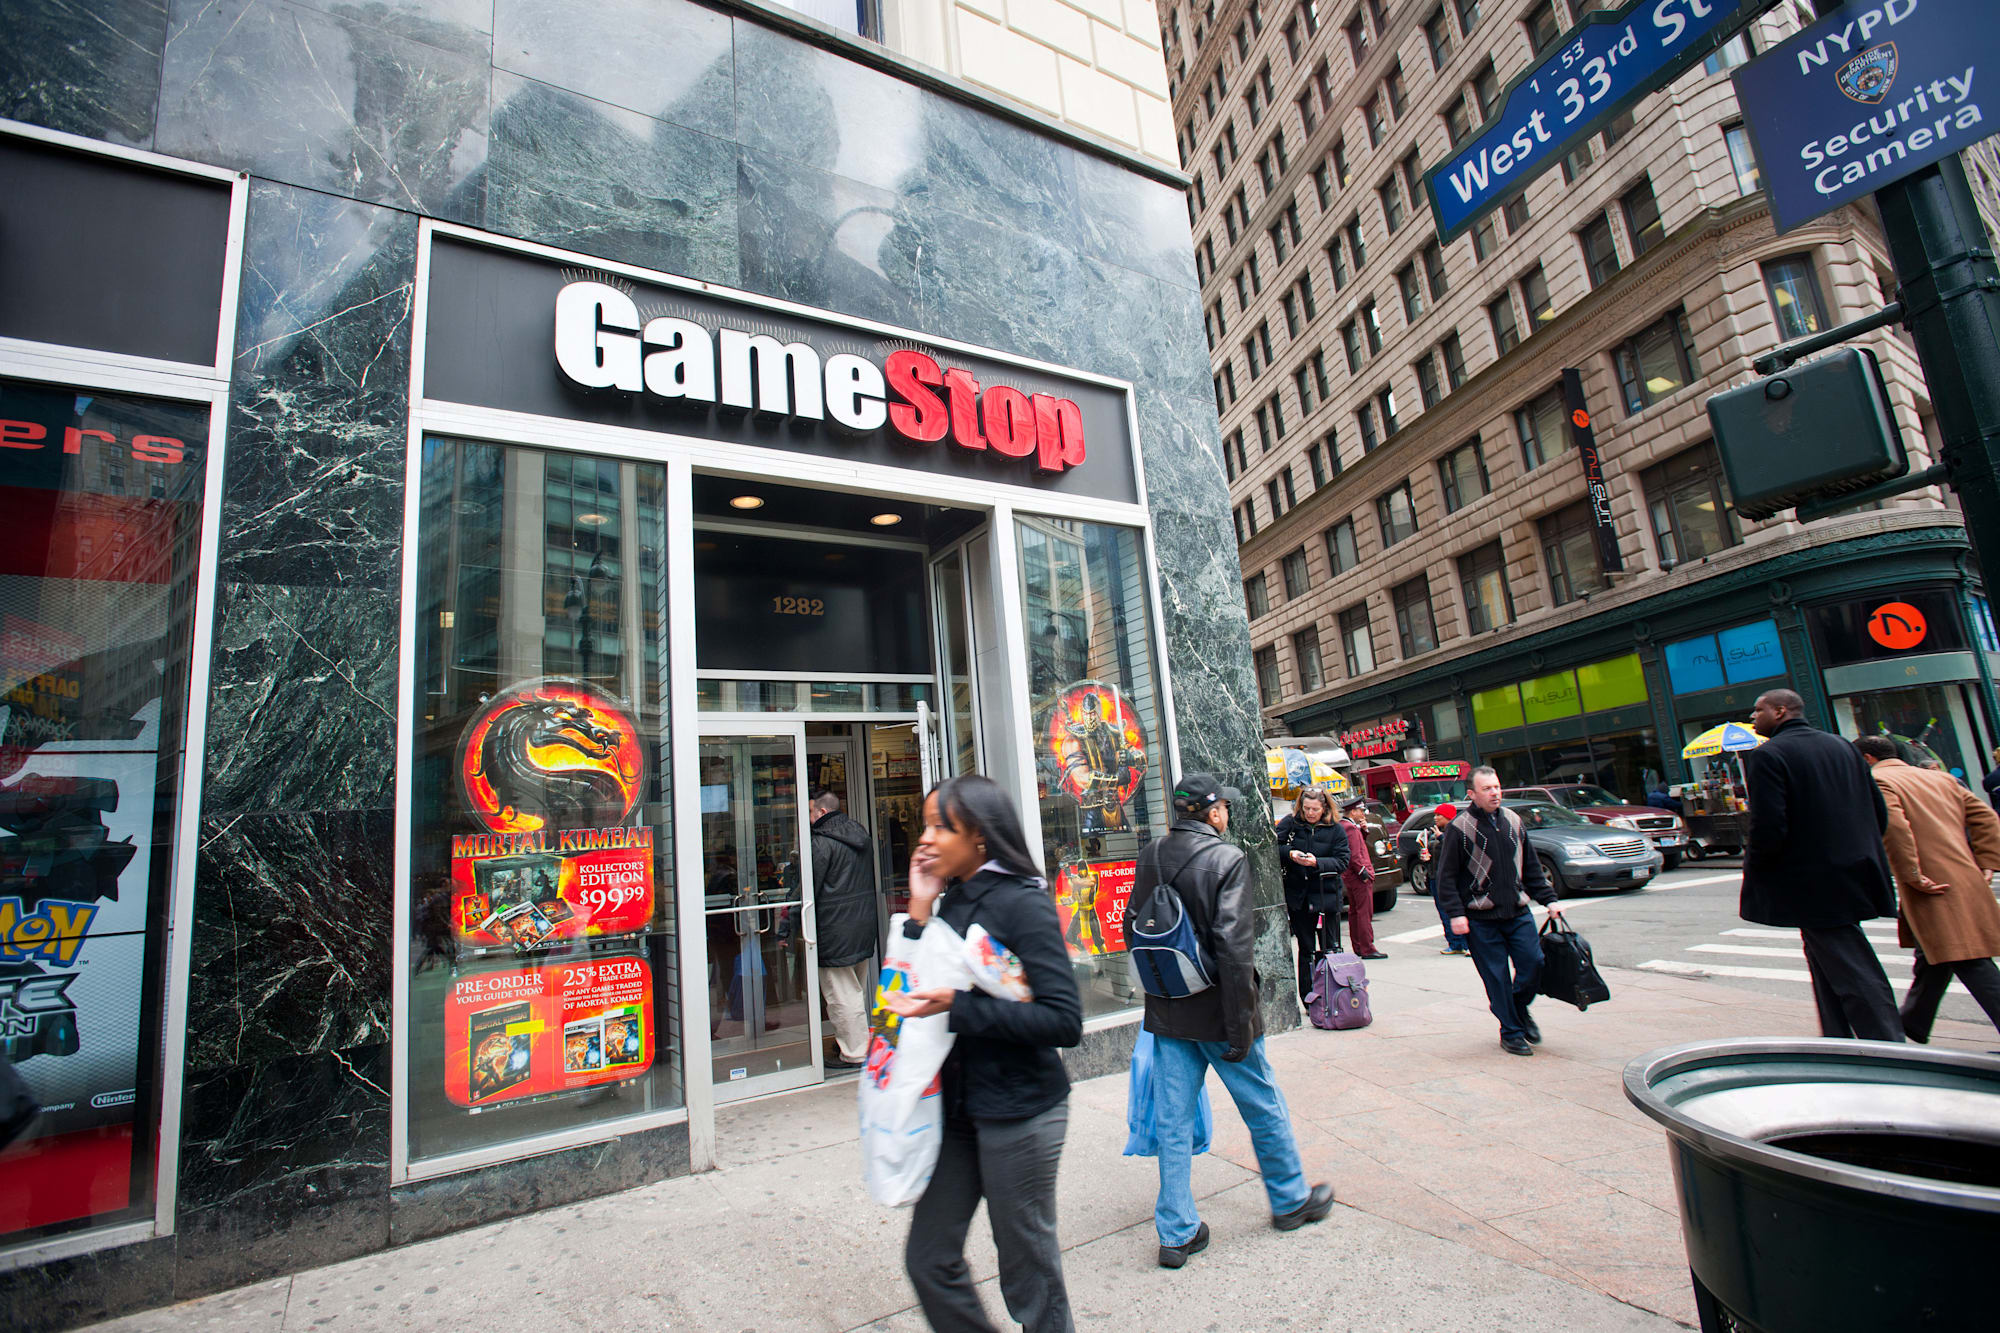 C1YC8B A GameStop video game store in the Herald Square shopping district in New York gamestop; videogames; shopping; electronic